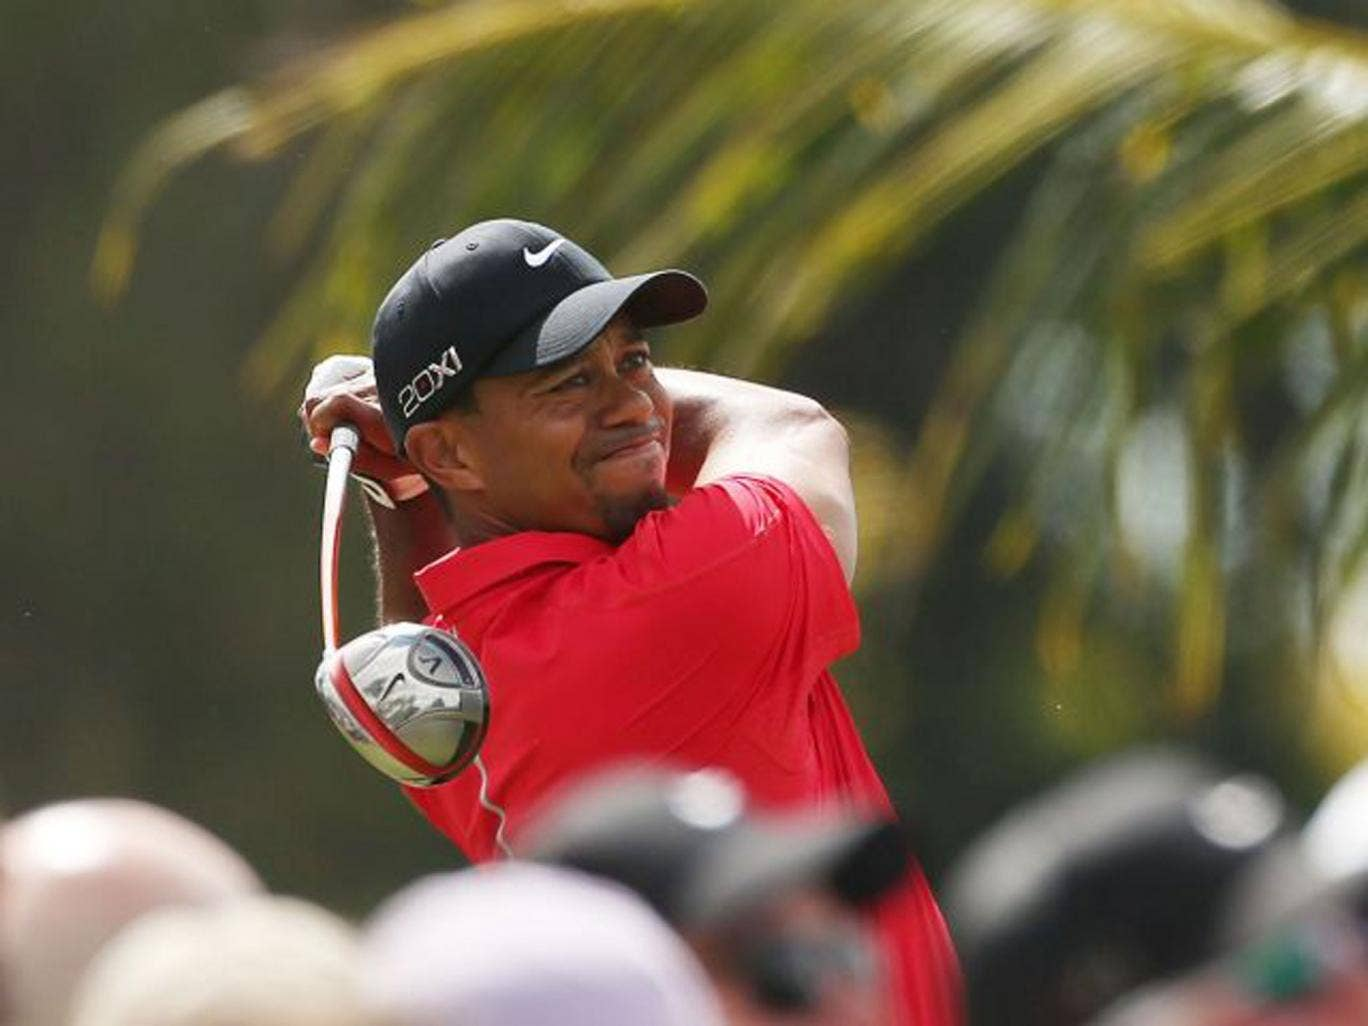 Tiger Woods dominated from start to finish in Miami